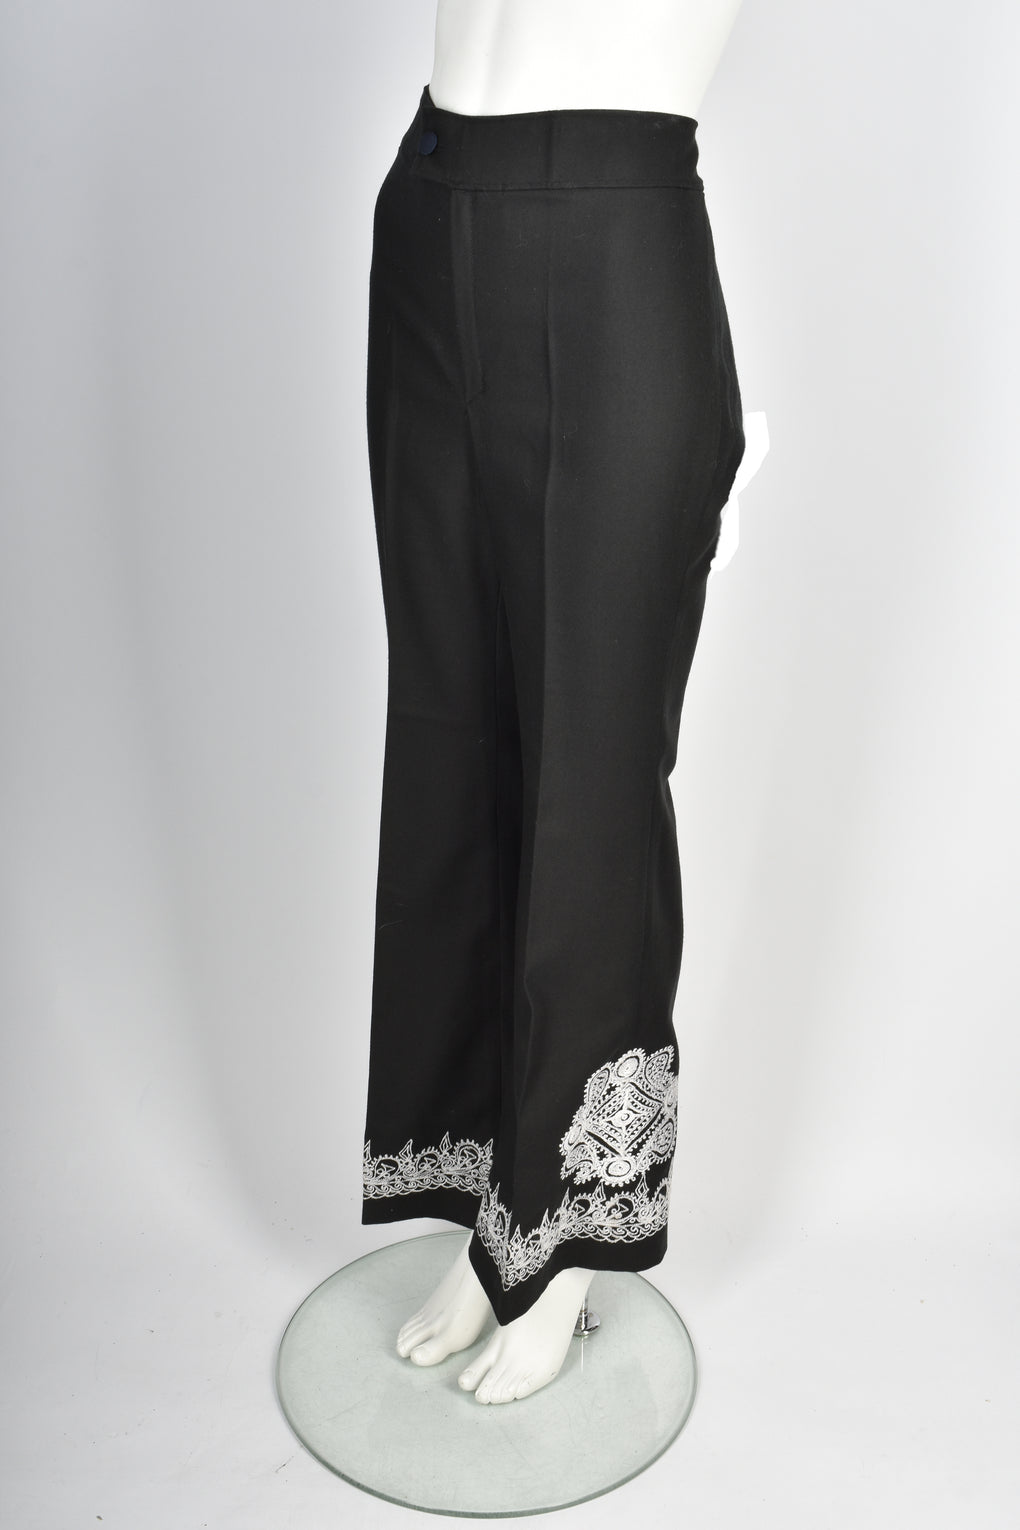 VINTAGE 1970s embroidered trouser suit S-M